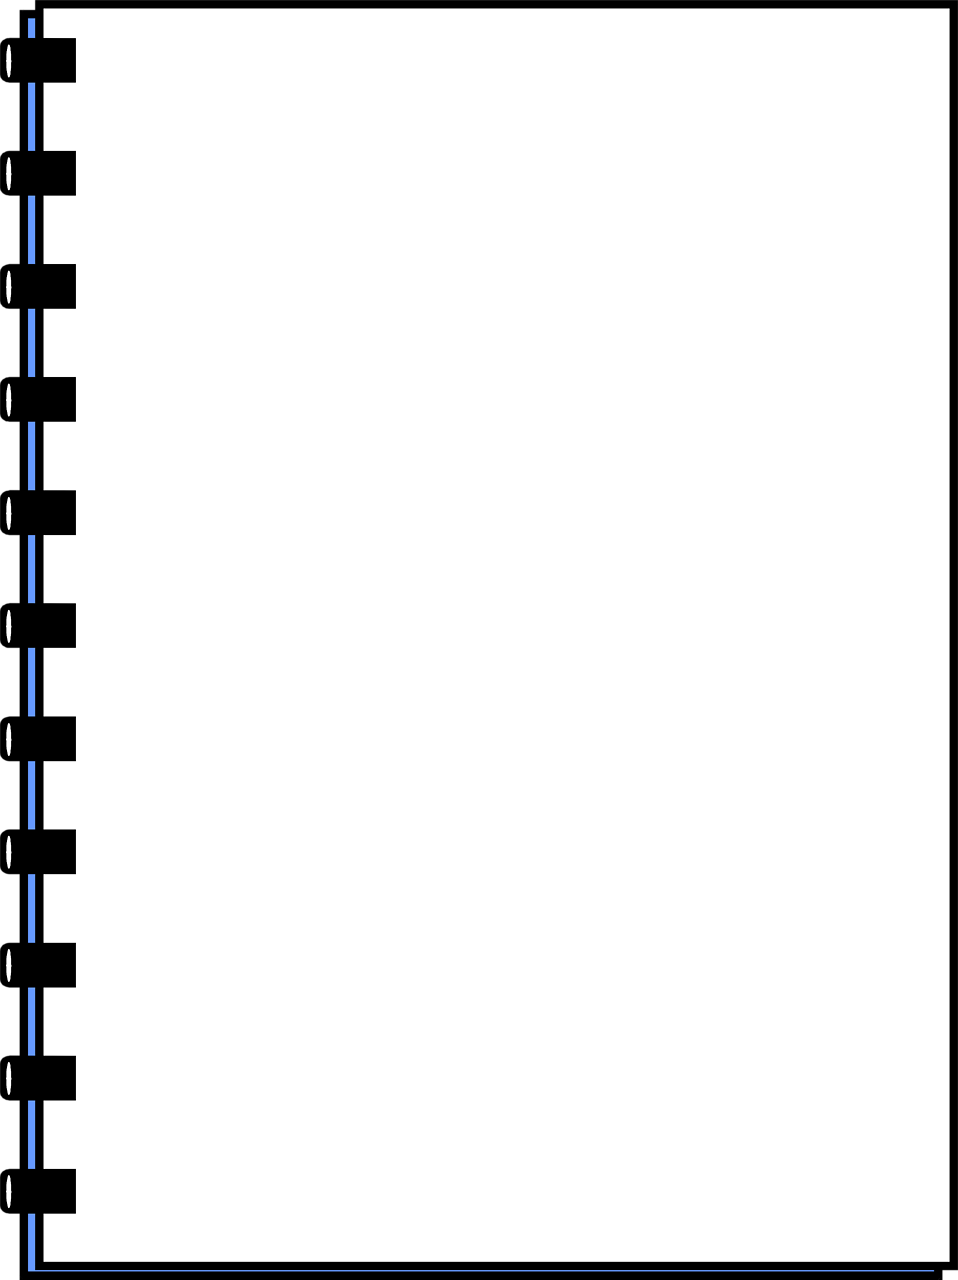 Notepad clipart blank notepad. Free download best on